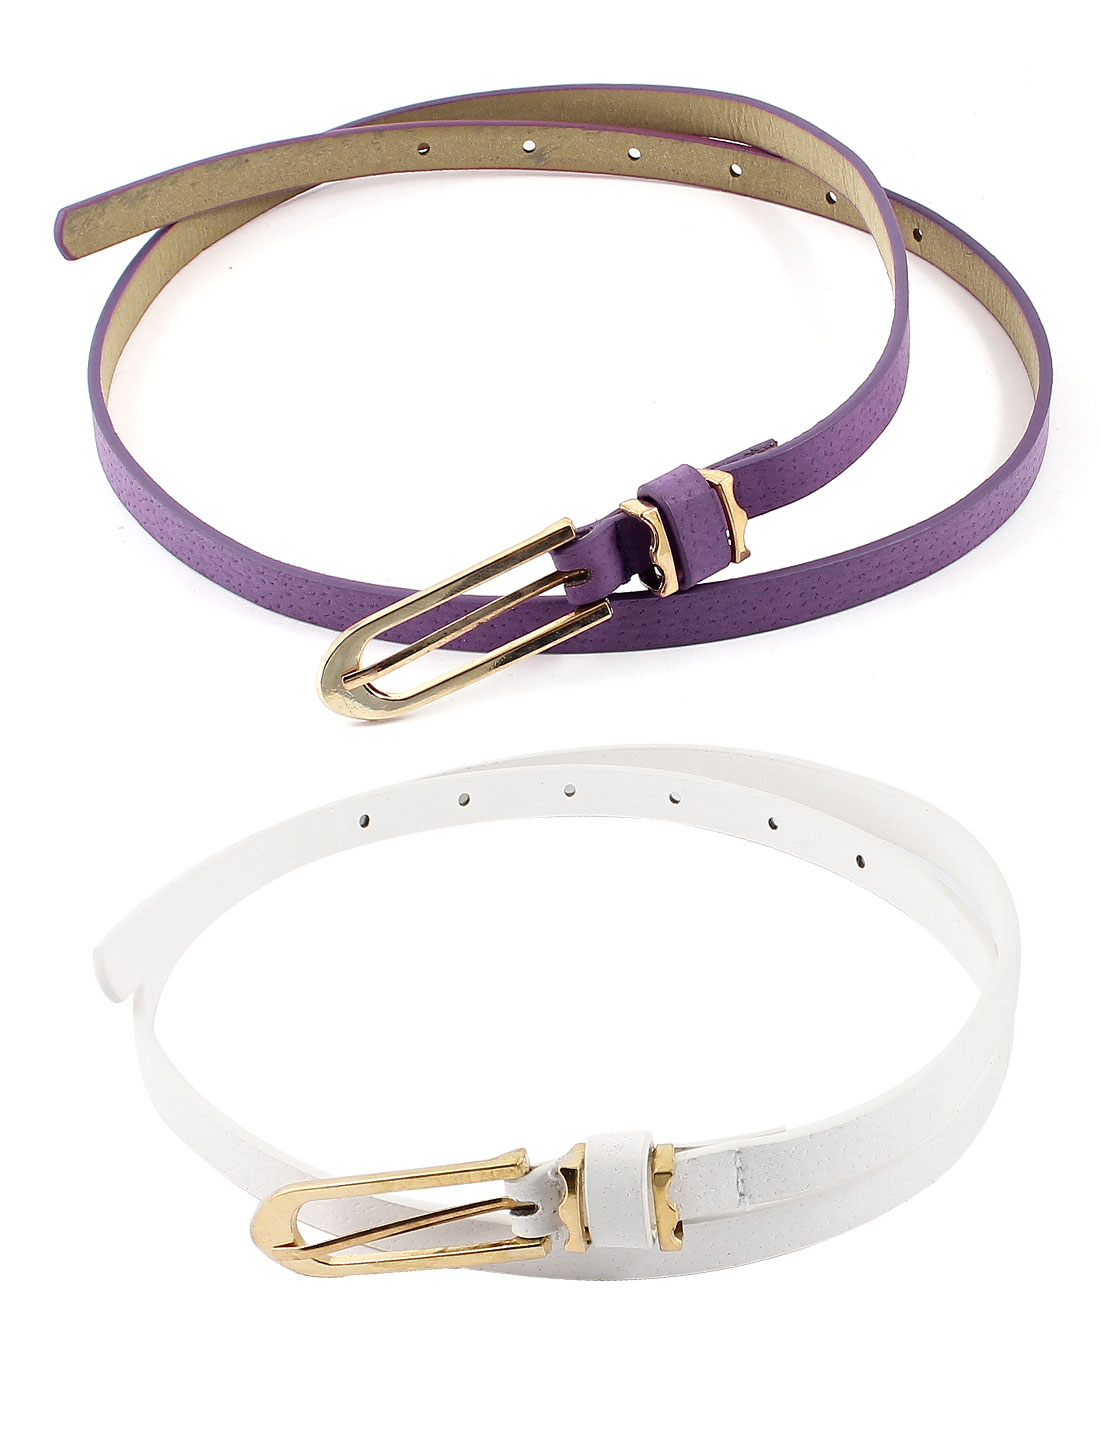 Women Single Pin Buckle Faux Leather Slim Waist Band Belt 2 Pcs Purple White